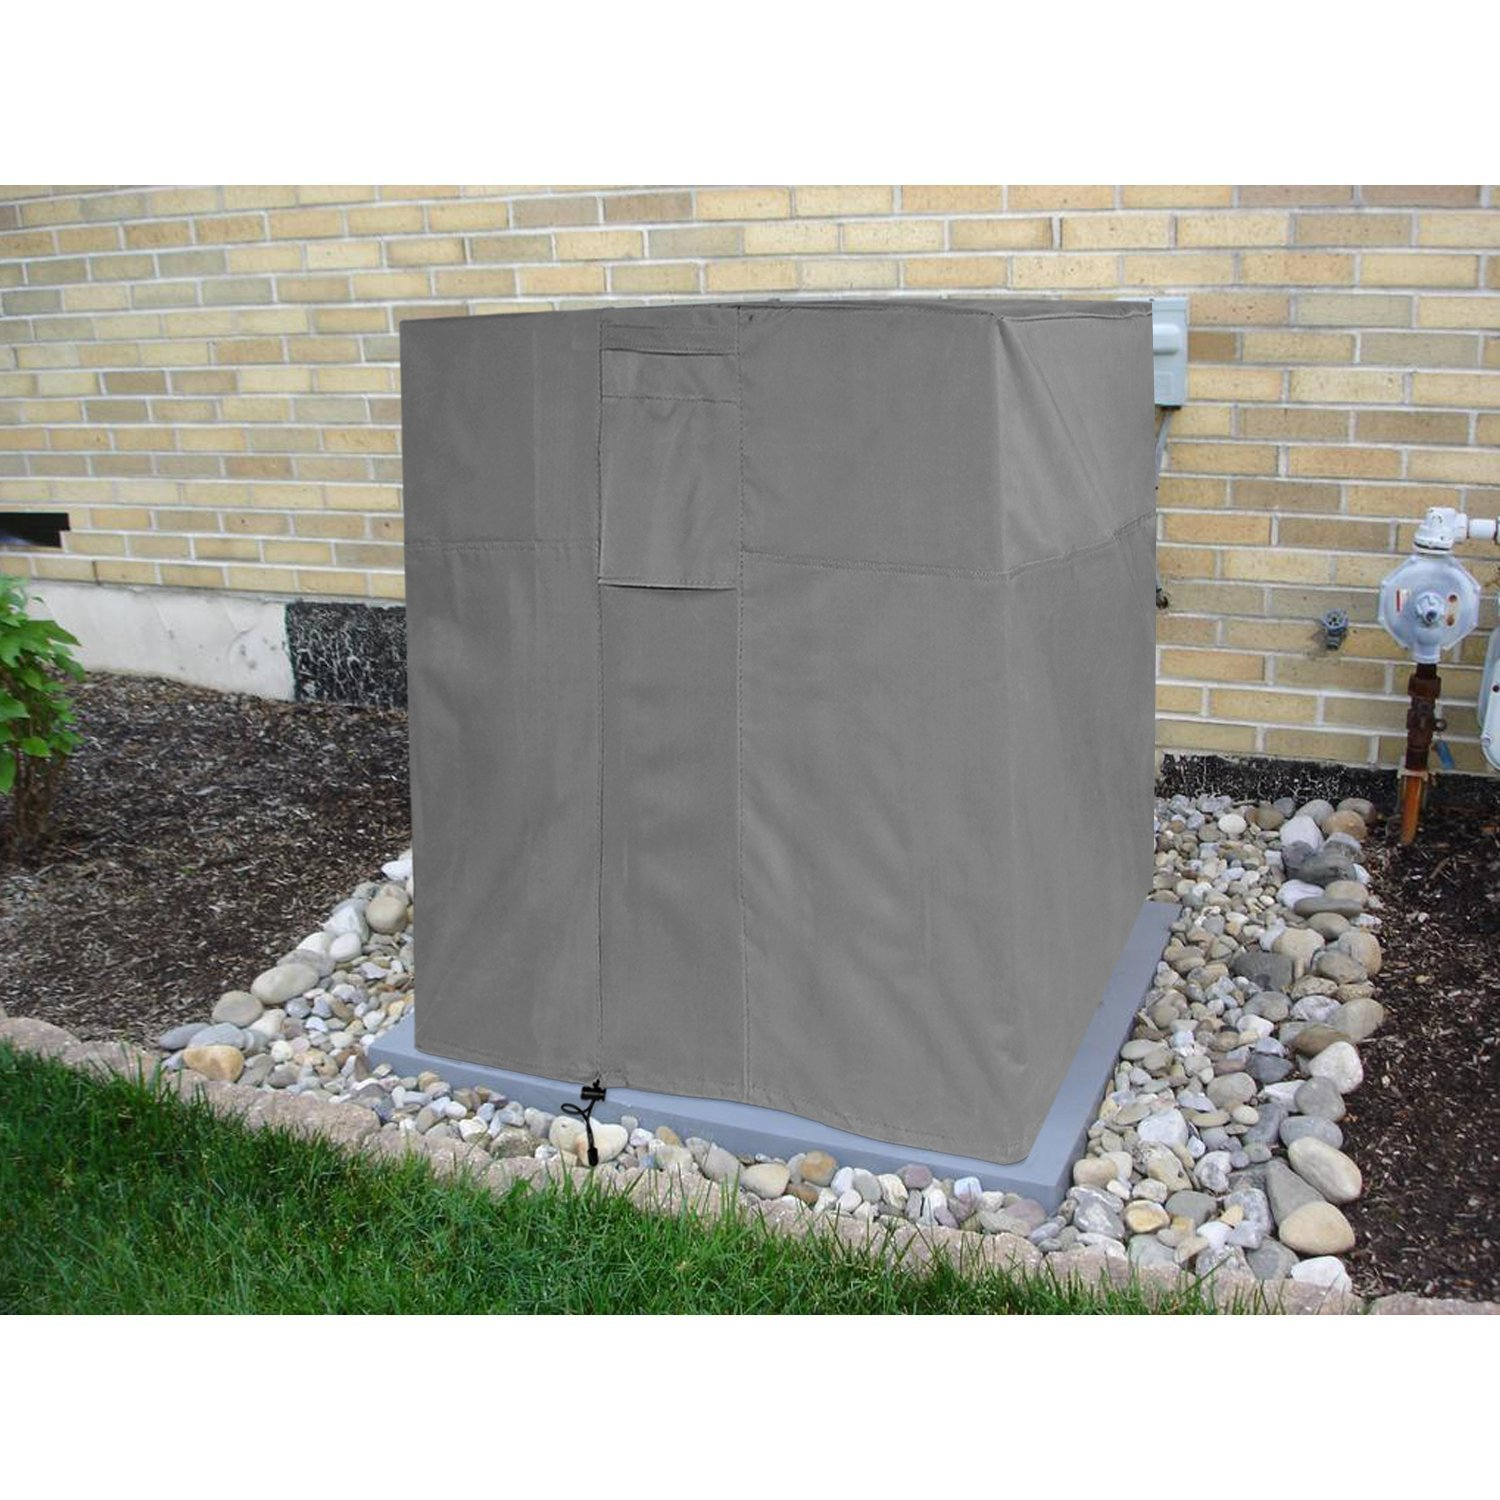 KHOMO GEAR - TITAN Series - Waterproof Heavy Duty Outdoor Air Conditioning Cover AC Protector - Grey